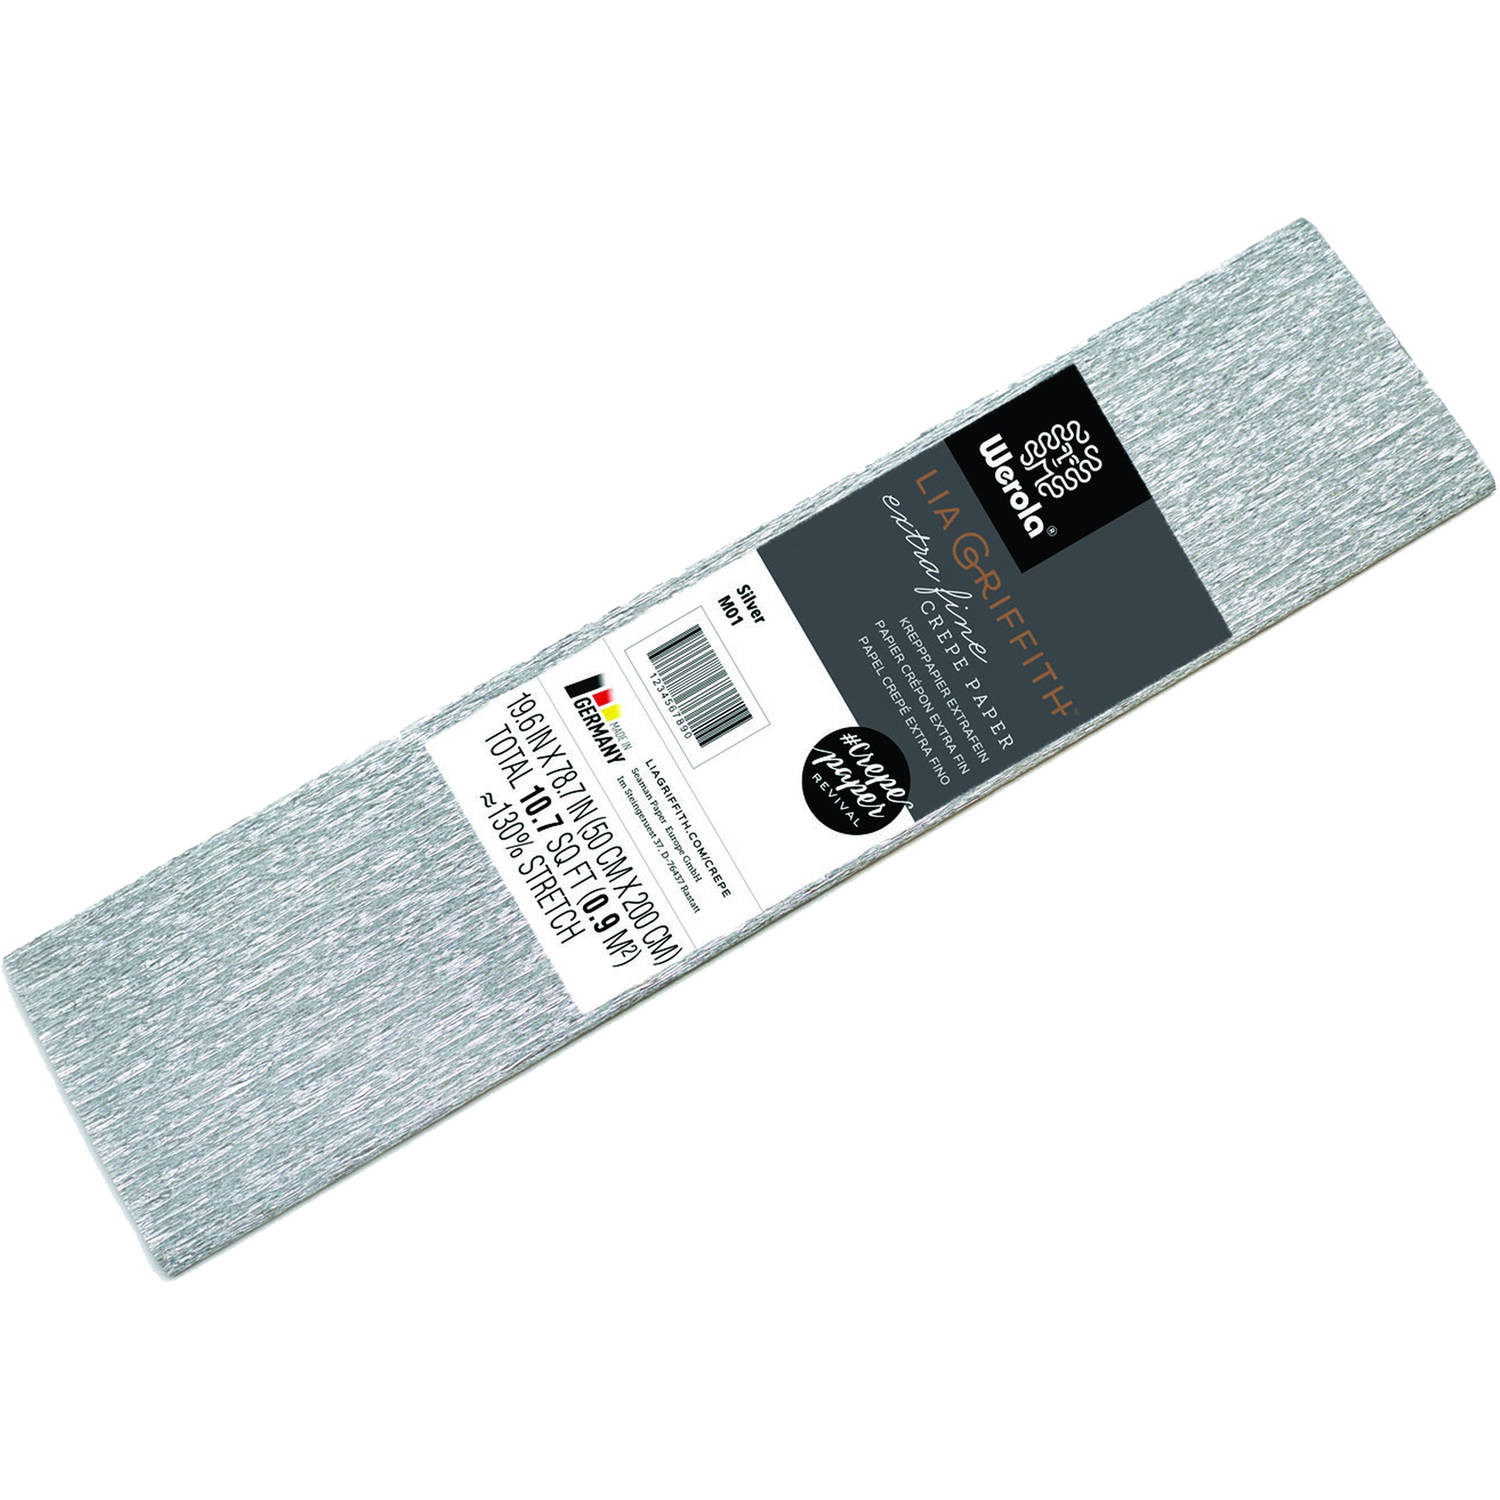 Lia Griffith Extra Fine Crepe Paper, Metallic Silver Craft Paper